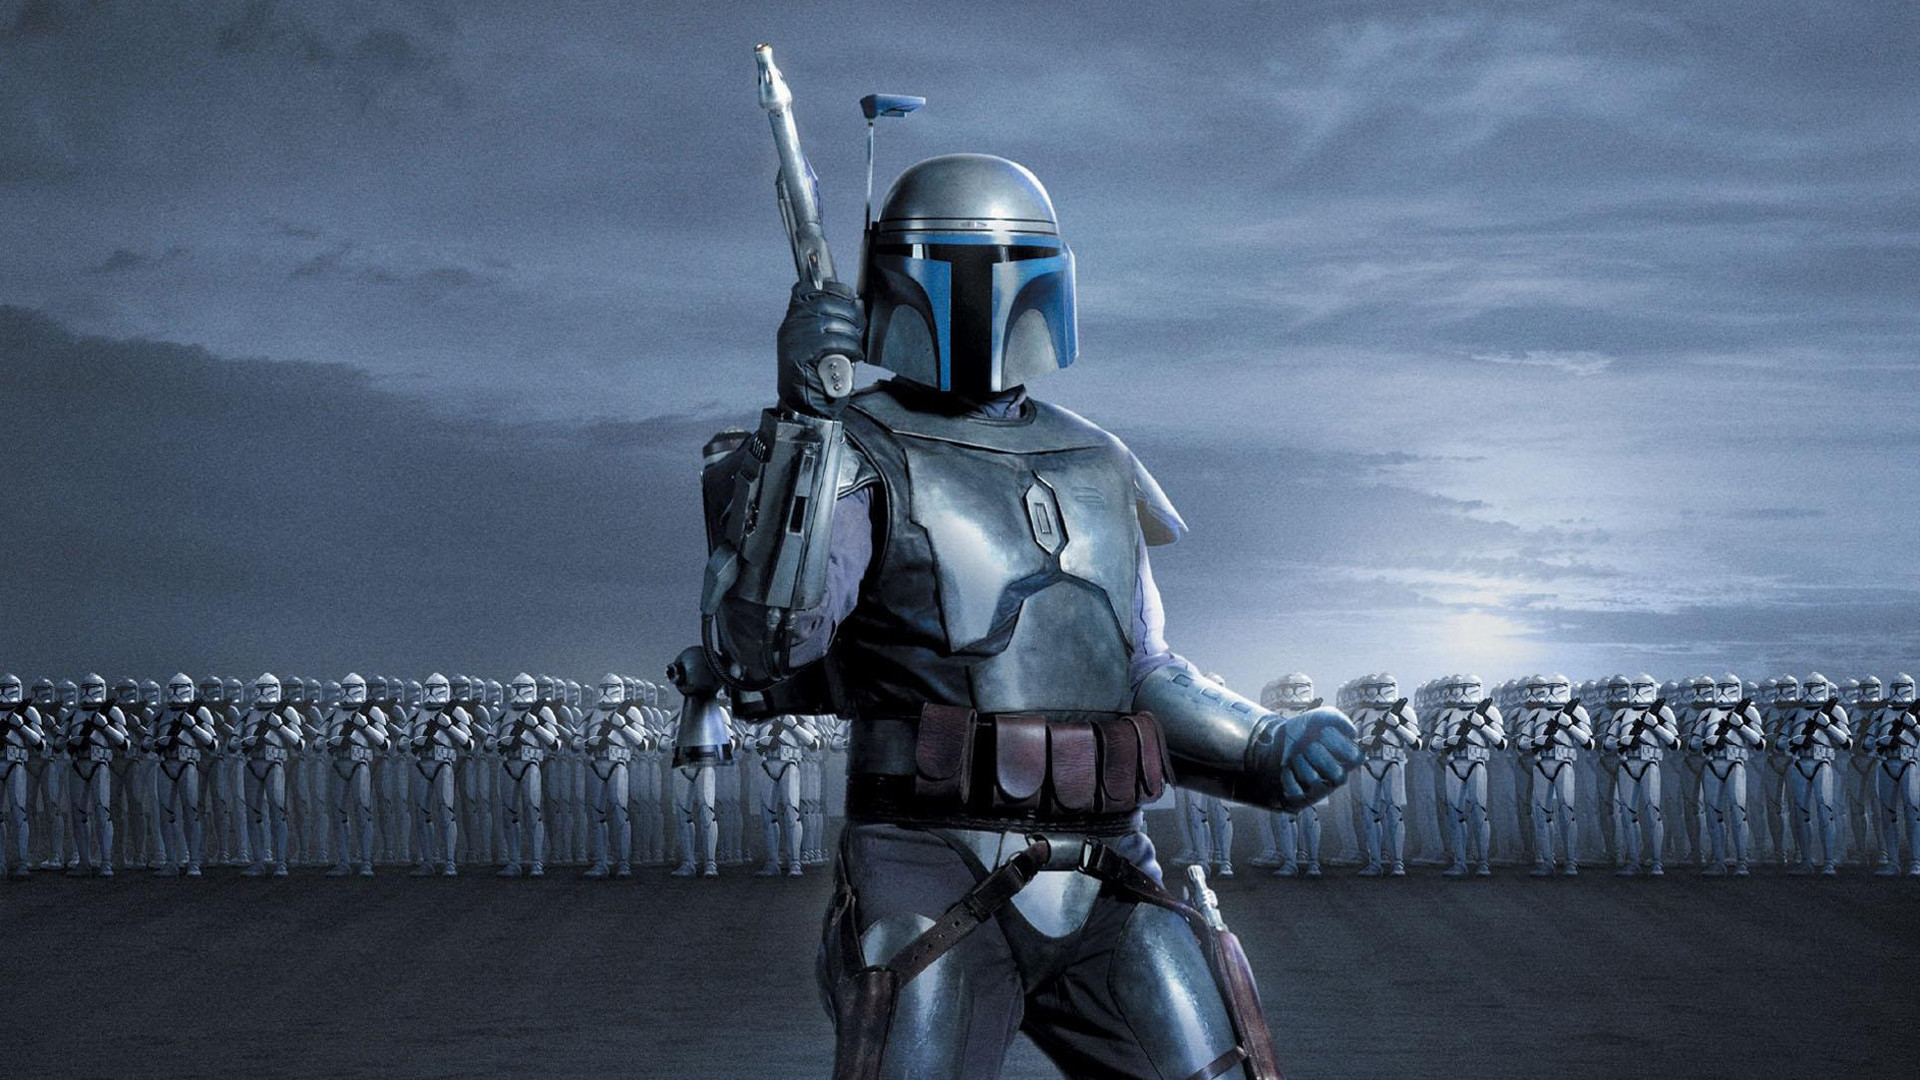 File Name 894543 894543 Star Wars Wallpapers 1920x1080